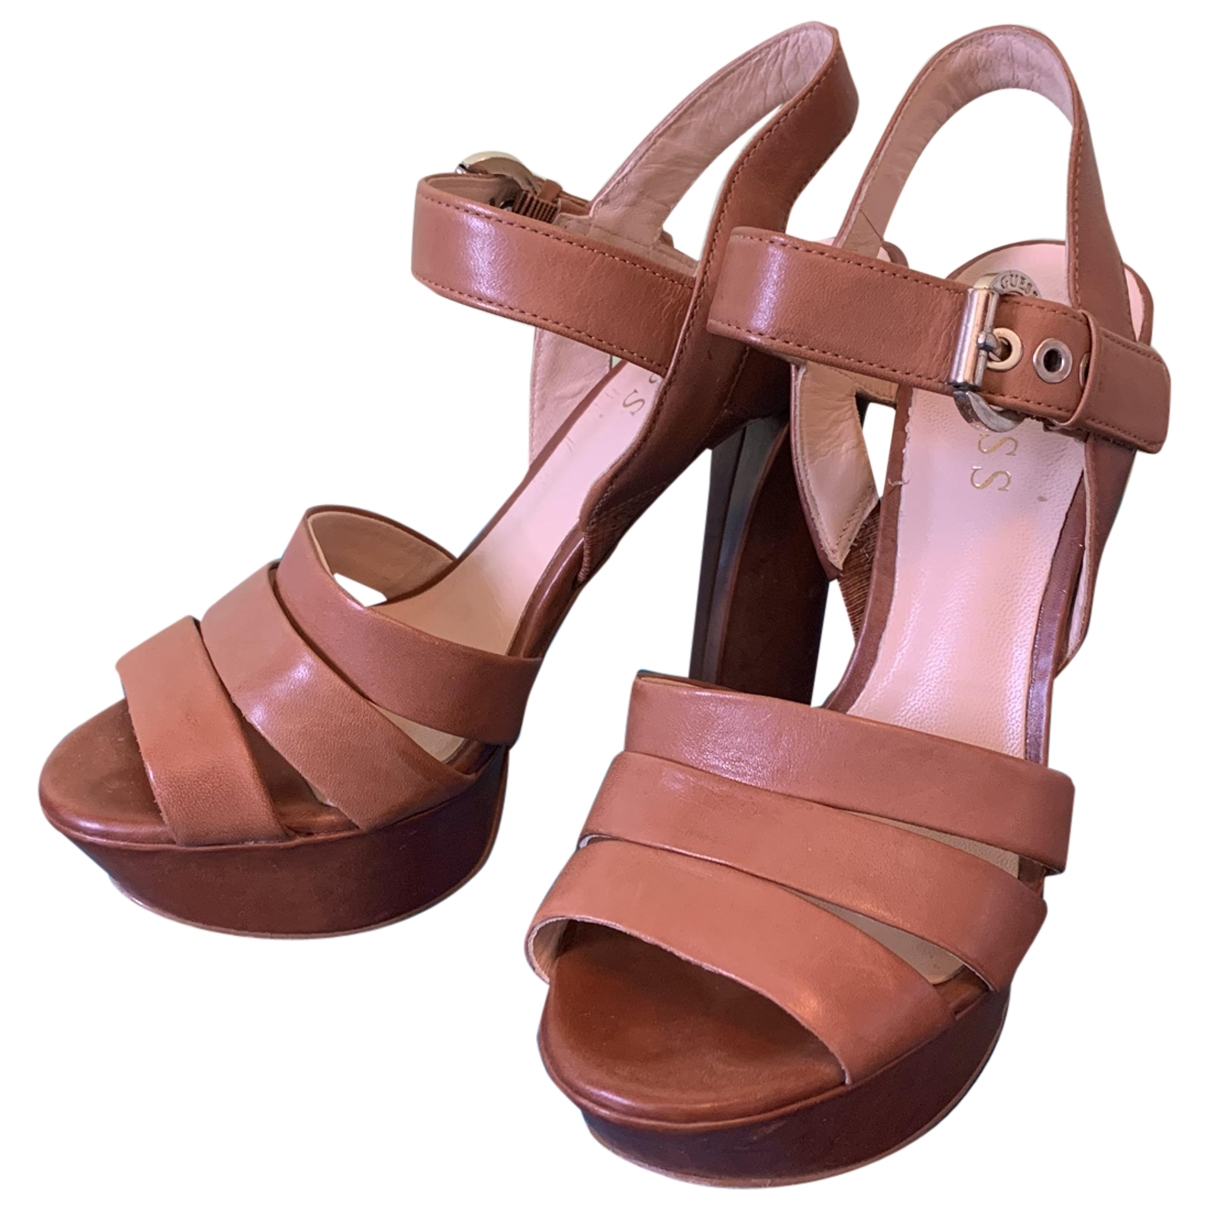 Guess \N Camel Leather Heels for Women 35 IT